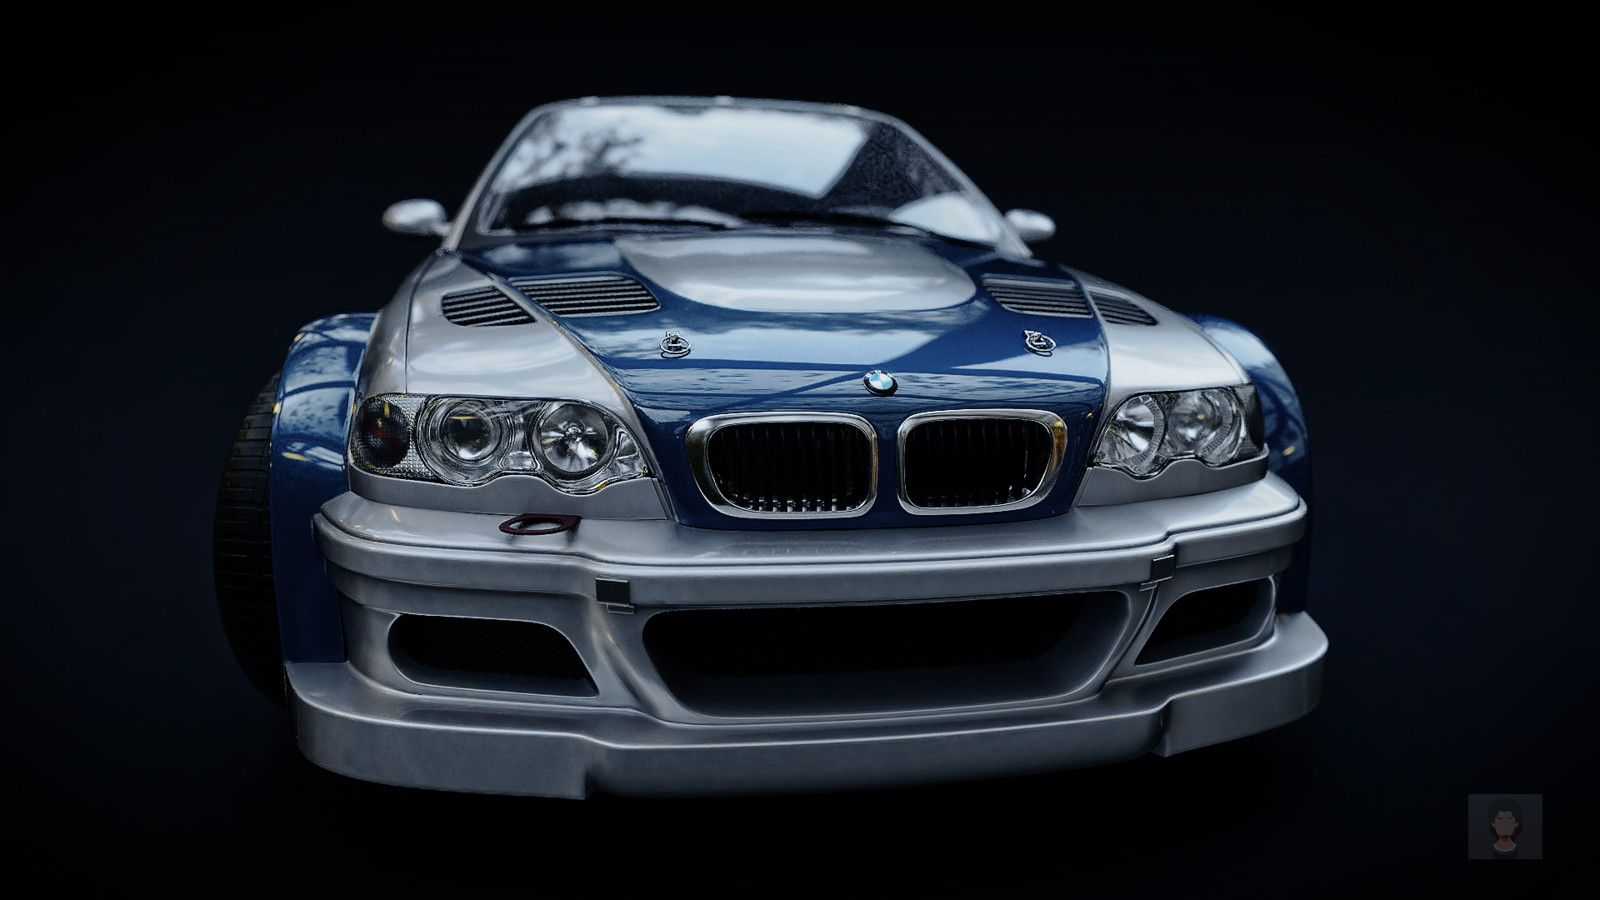 Bmw E46 M3 Gtr Need For Speed Most Wanted 2005 Josafa Batista